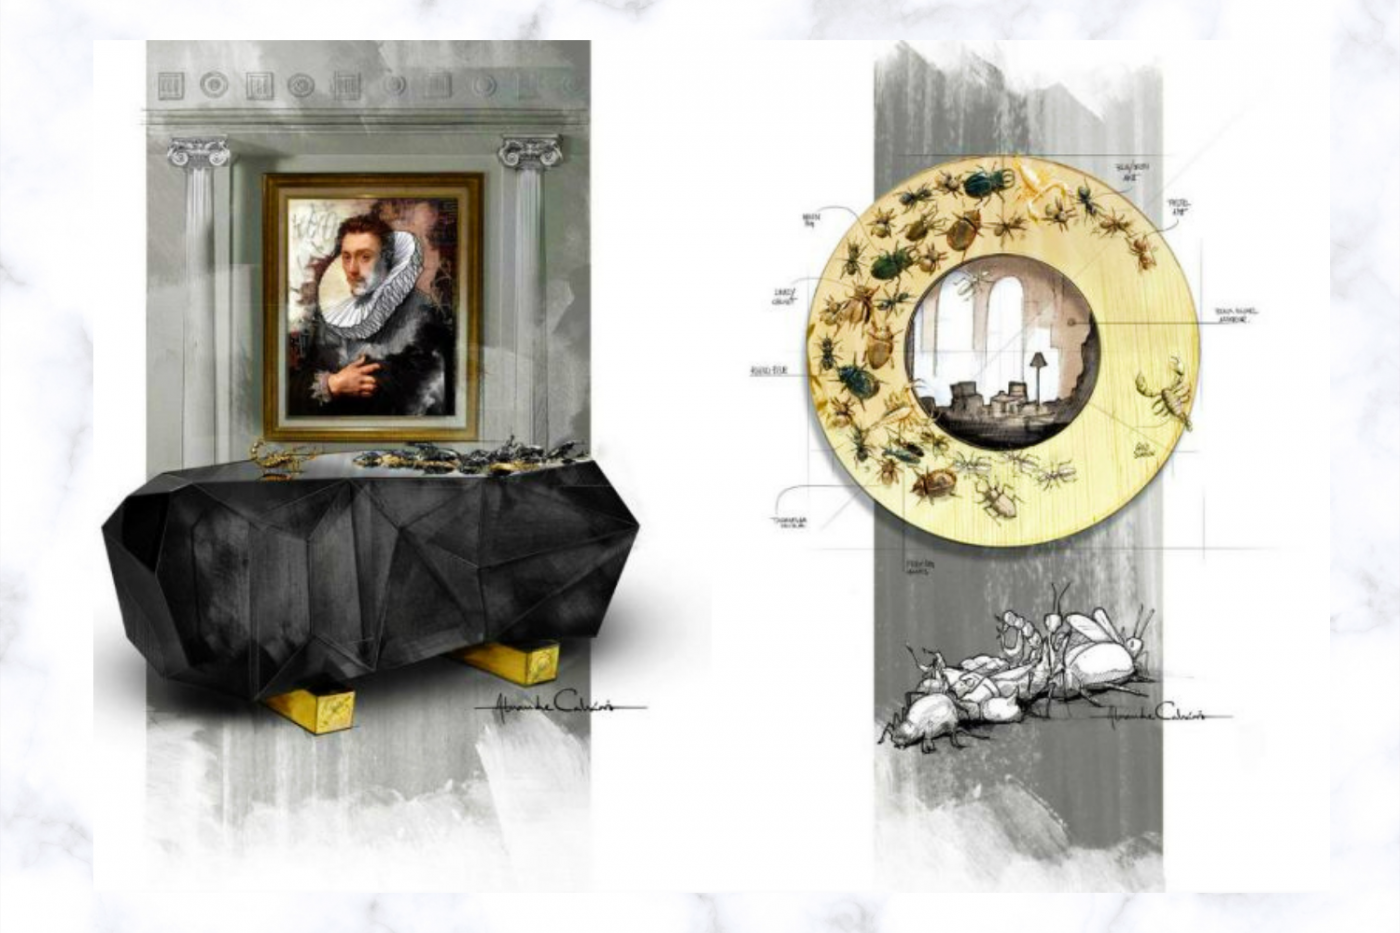 art furniture This Is Halloween! Art Furniture for Your Spooky Home Design Untitled design 7 1400x933